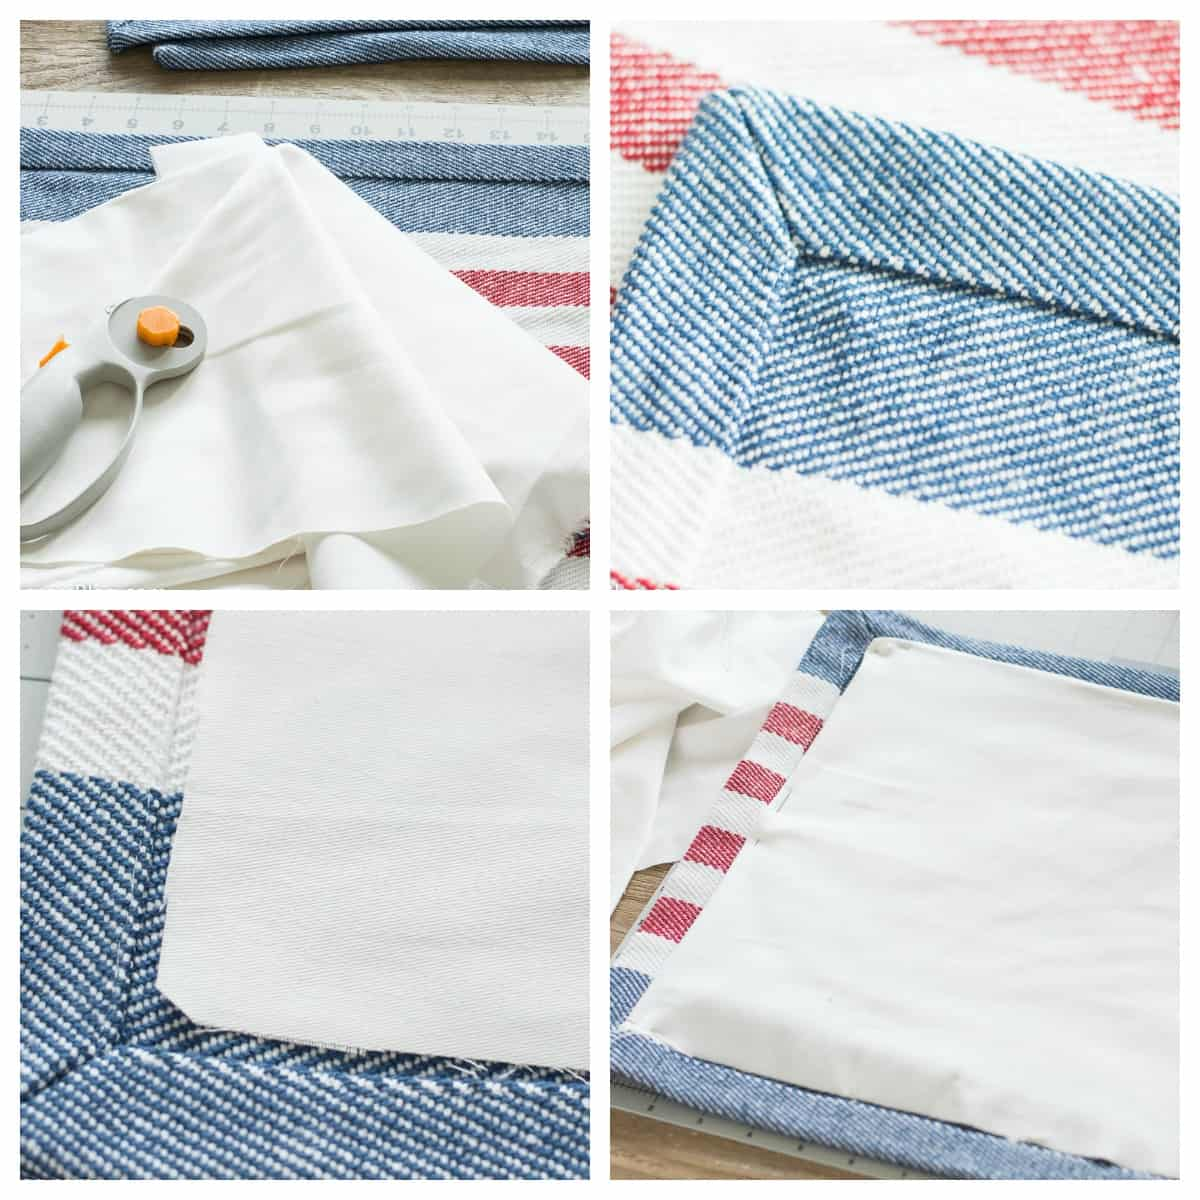 DIY patriotic throw pillow tutorial- cutting white fabric and pinning to underside of placemat